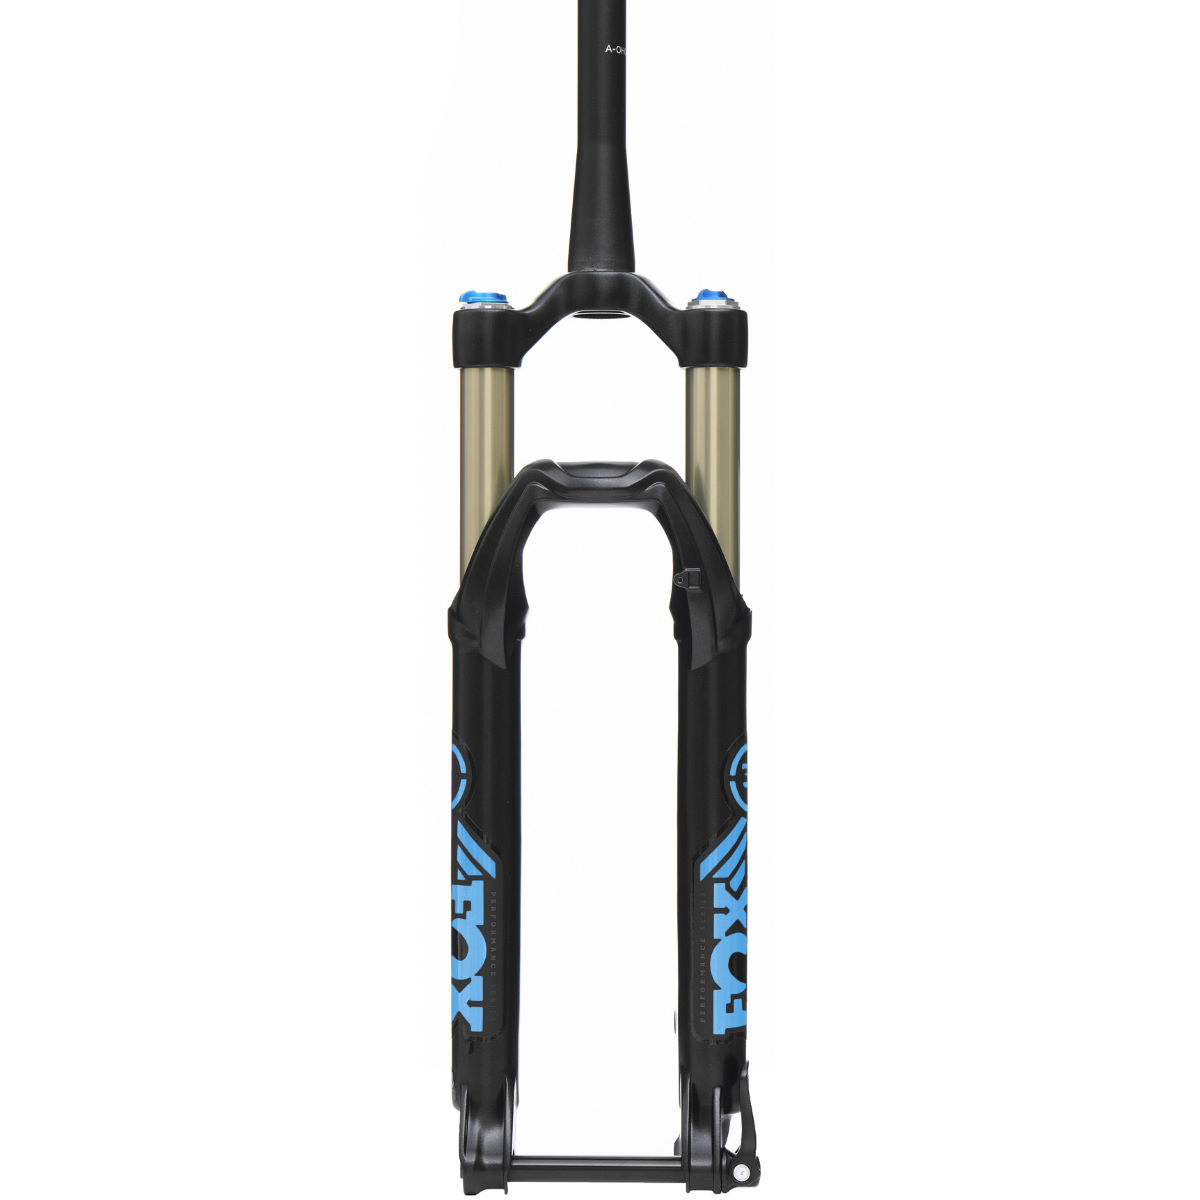 Fox Suspension 32 Float CTD FIT Performance Fork - Horquillas de suspensión